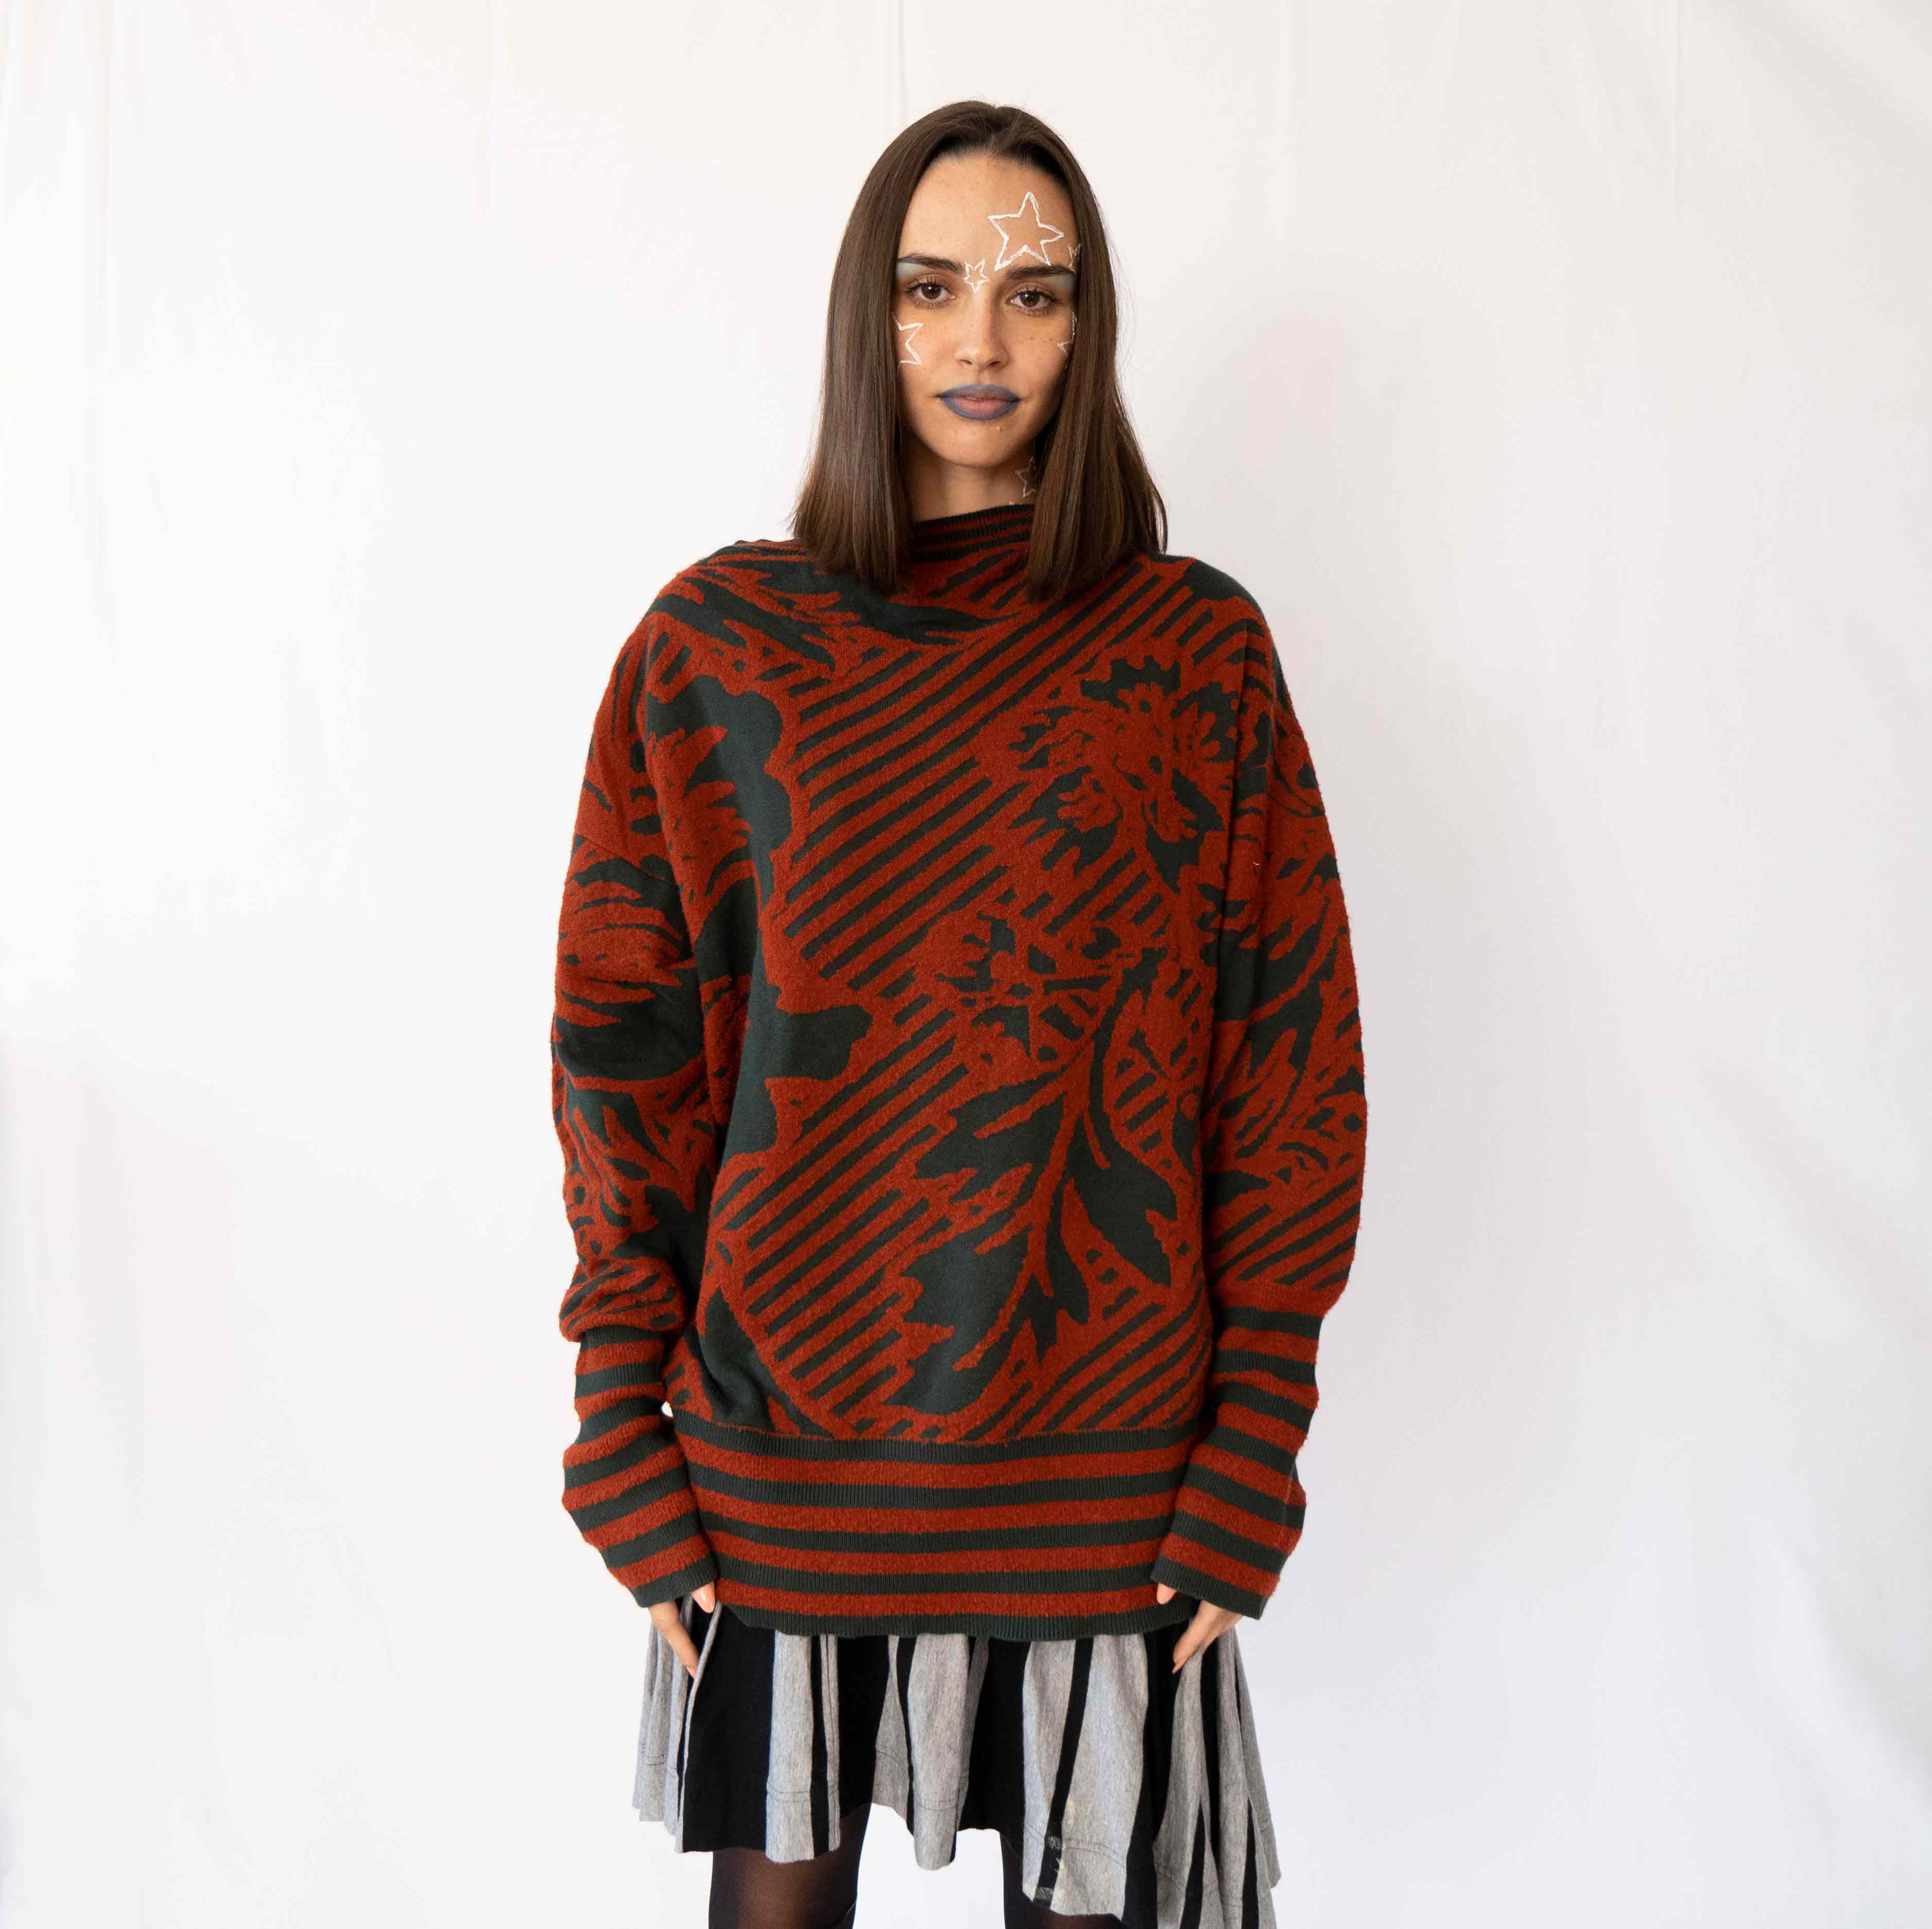 This sweater will feel like a big hug during these chilly seasons approaching. Stay out of the cold air with this stunning piece.